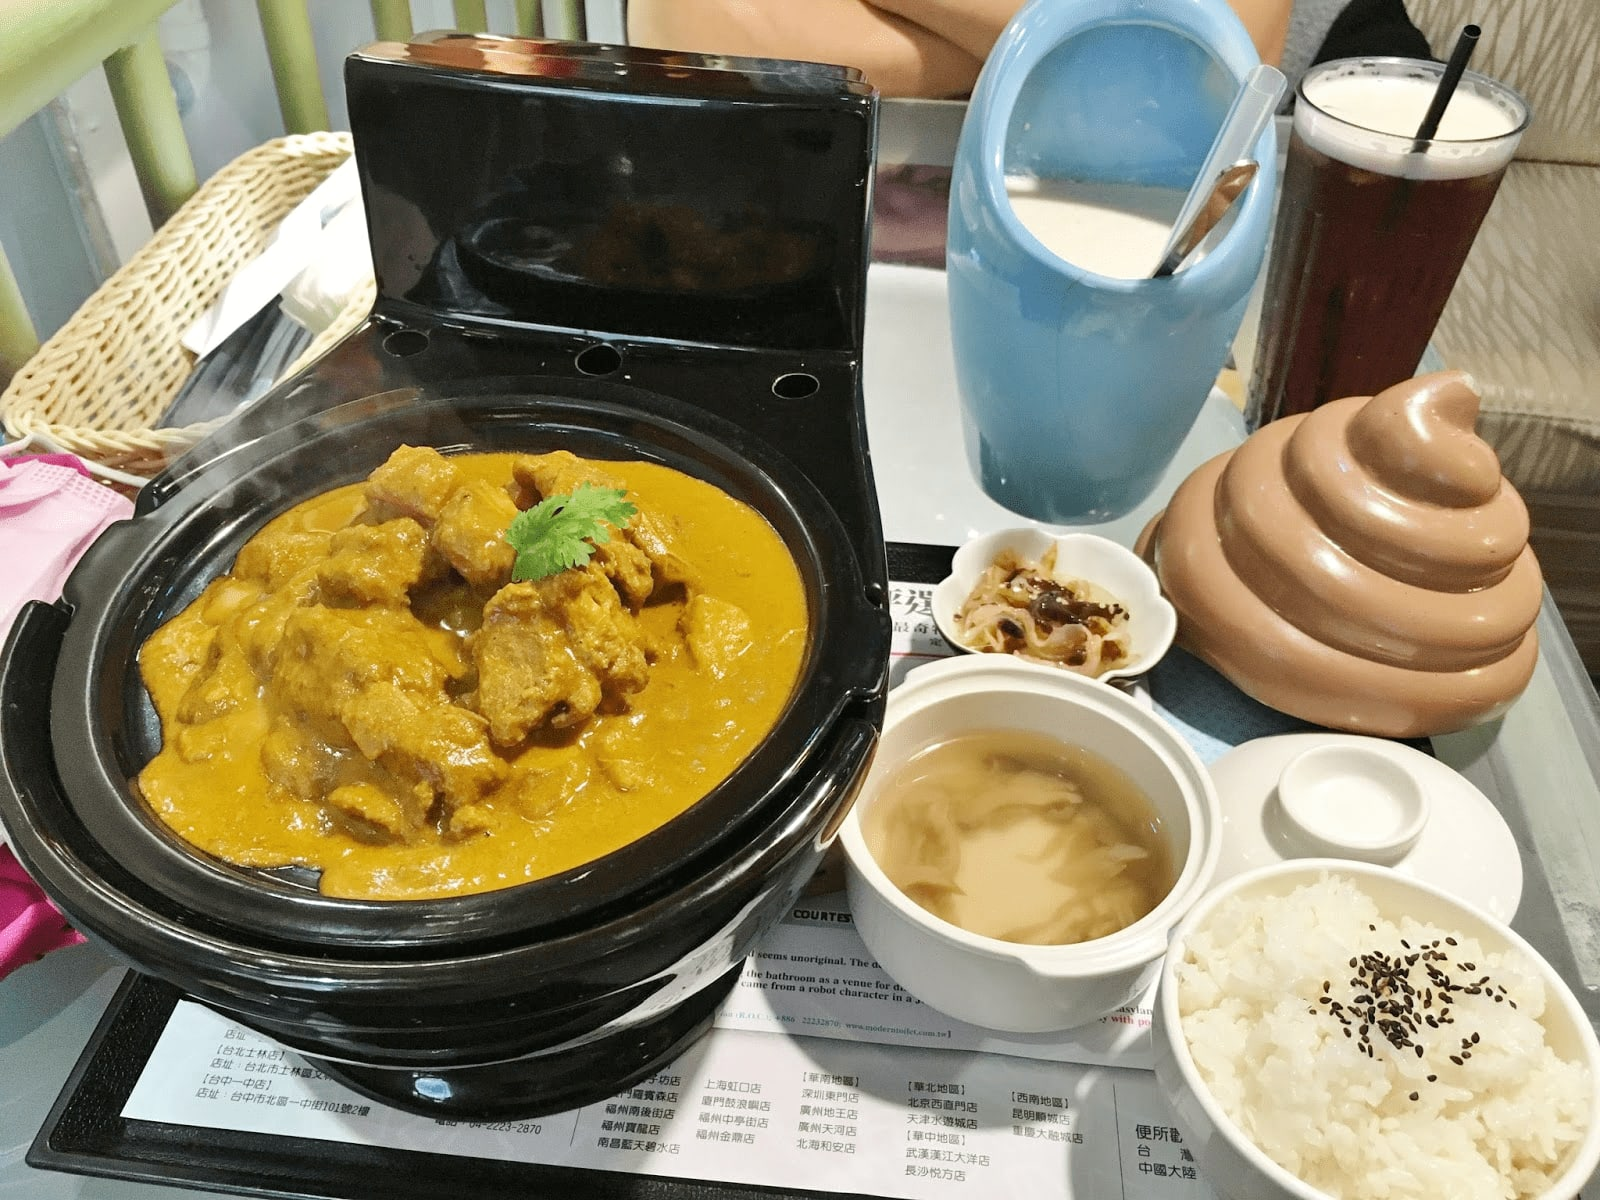 Modern-Toilet-Restaurant-Curry-Rice